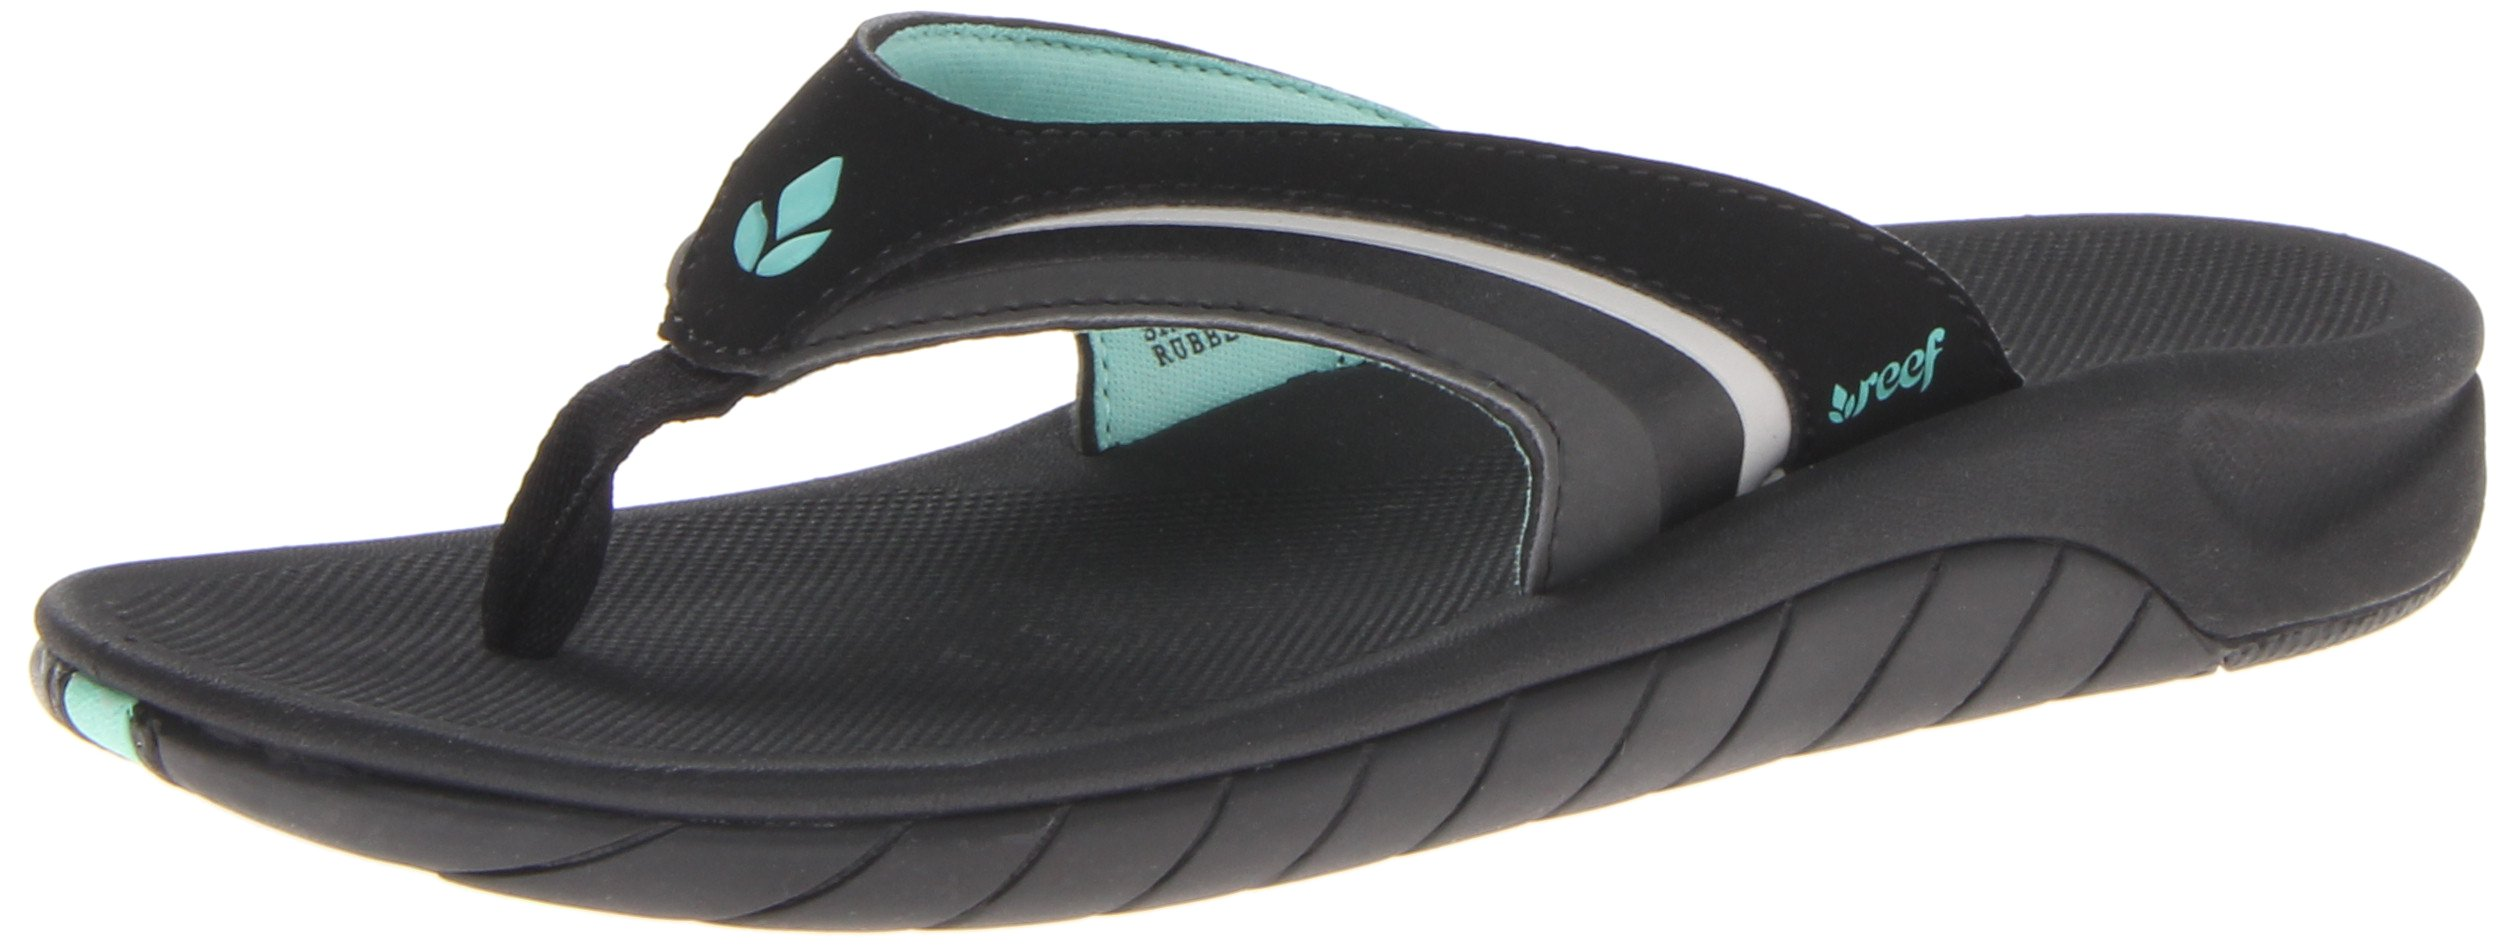 Reef Womens Sandals Slap 3   Athletic Sports Flip Flops For Women With Soft  Cushion Footbed